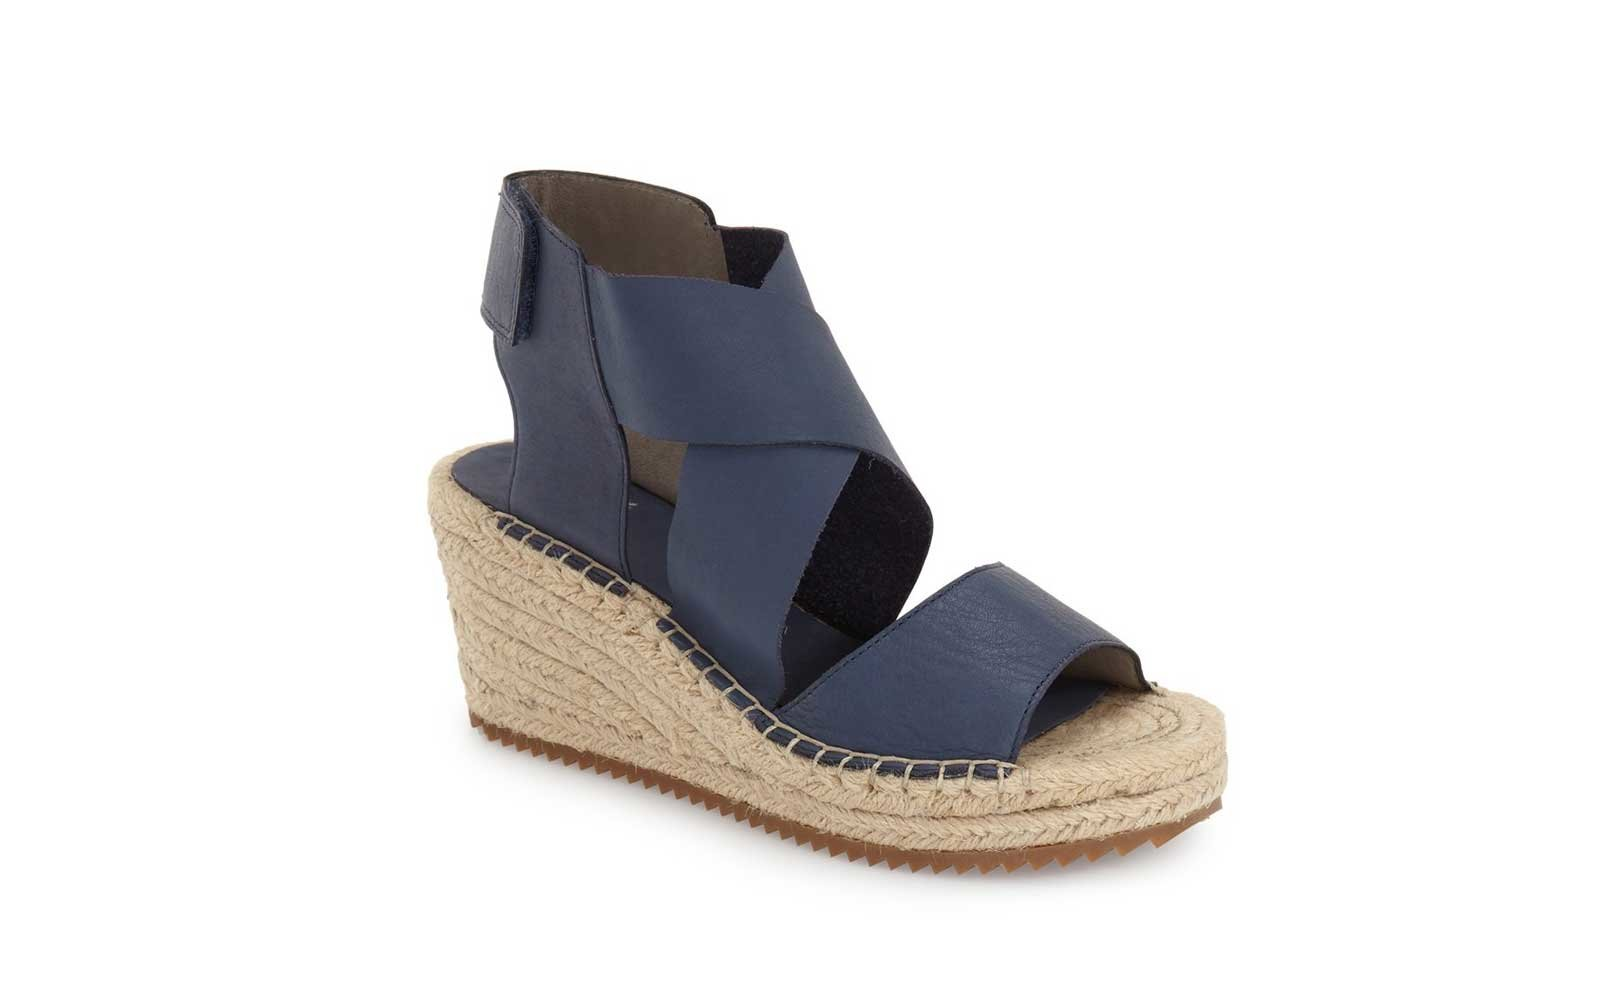 e1d6486620c86c Walkable Wedges  Eileen Fisher  Willow  Espadrille Wedge Sandal. eileen  fisher womens comfortable walking sandals. Courtesy of Nordstrom